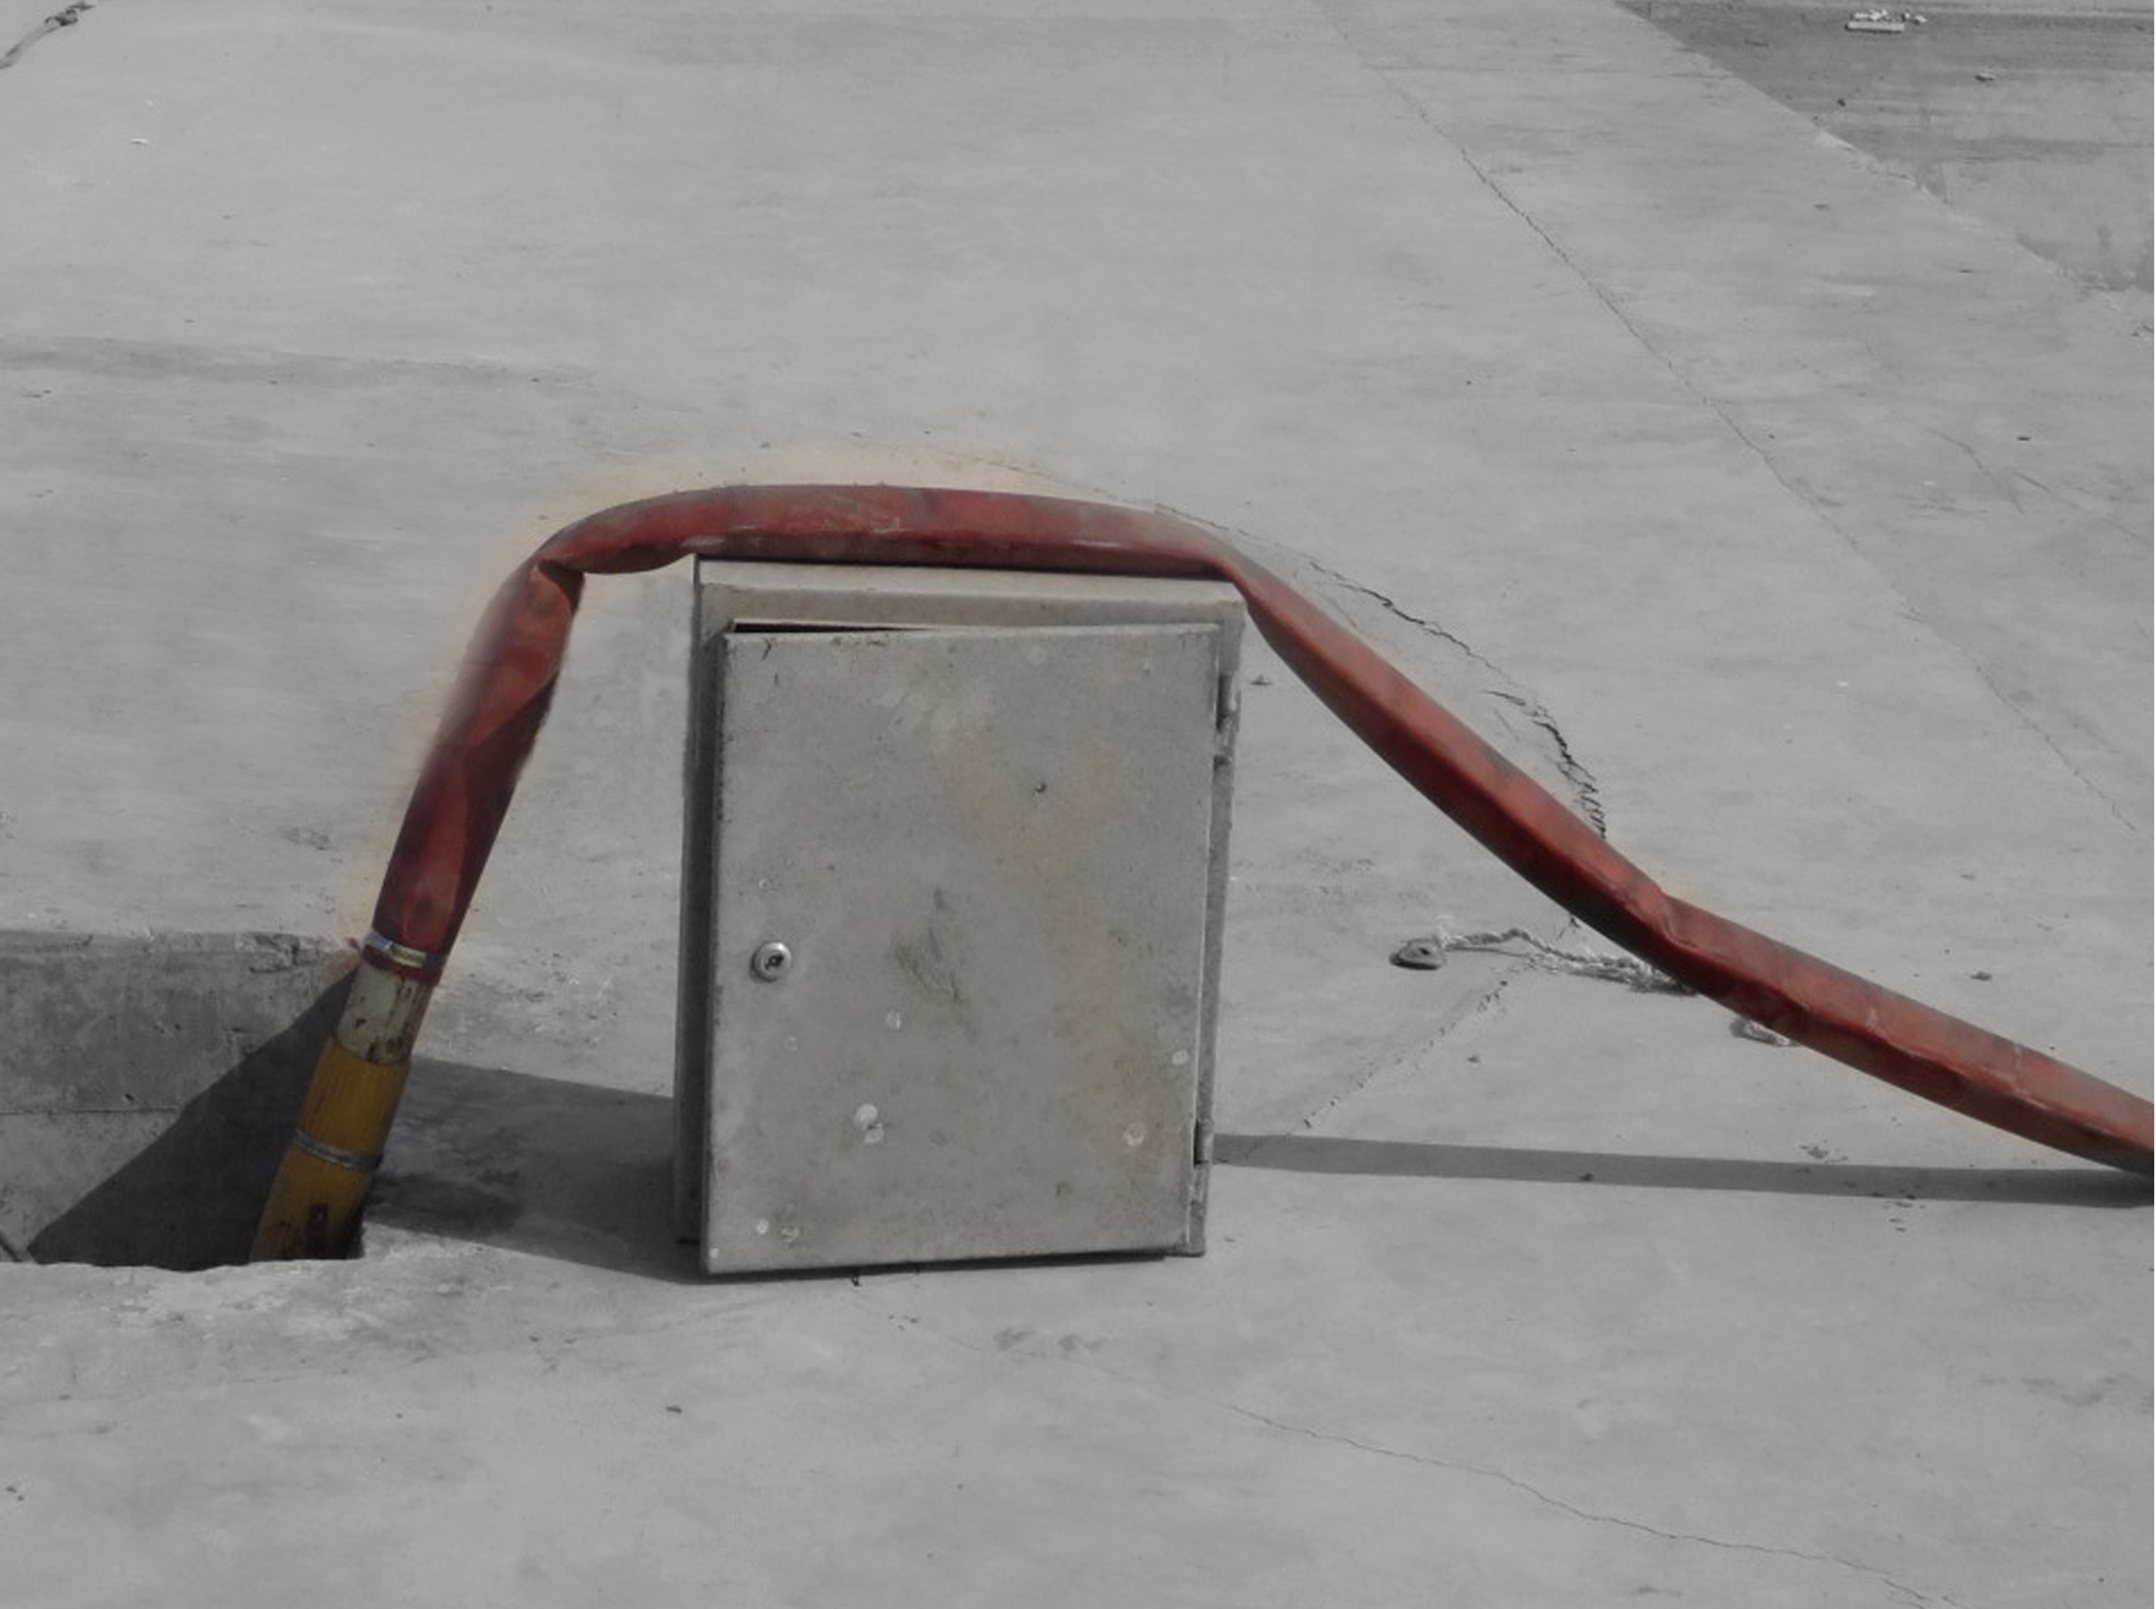 metal box with pipe laid on top of it on concrete floor